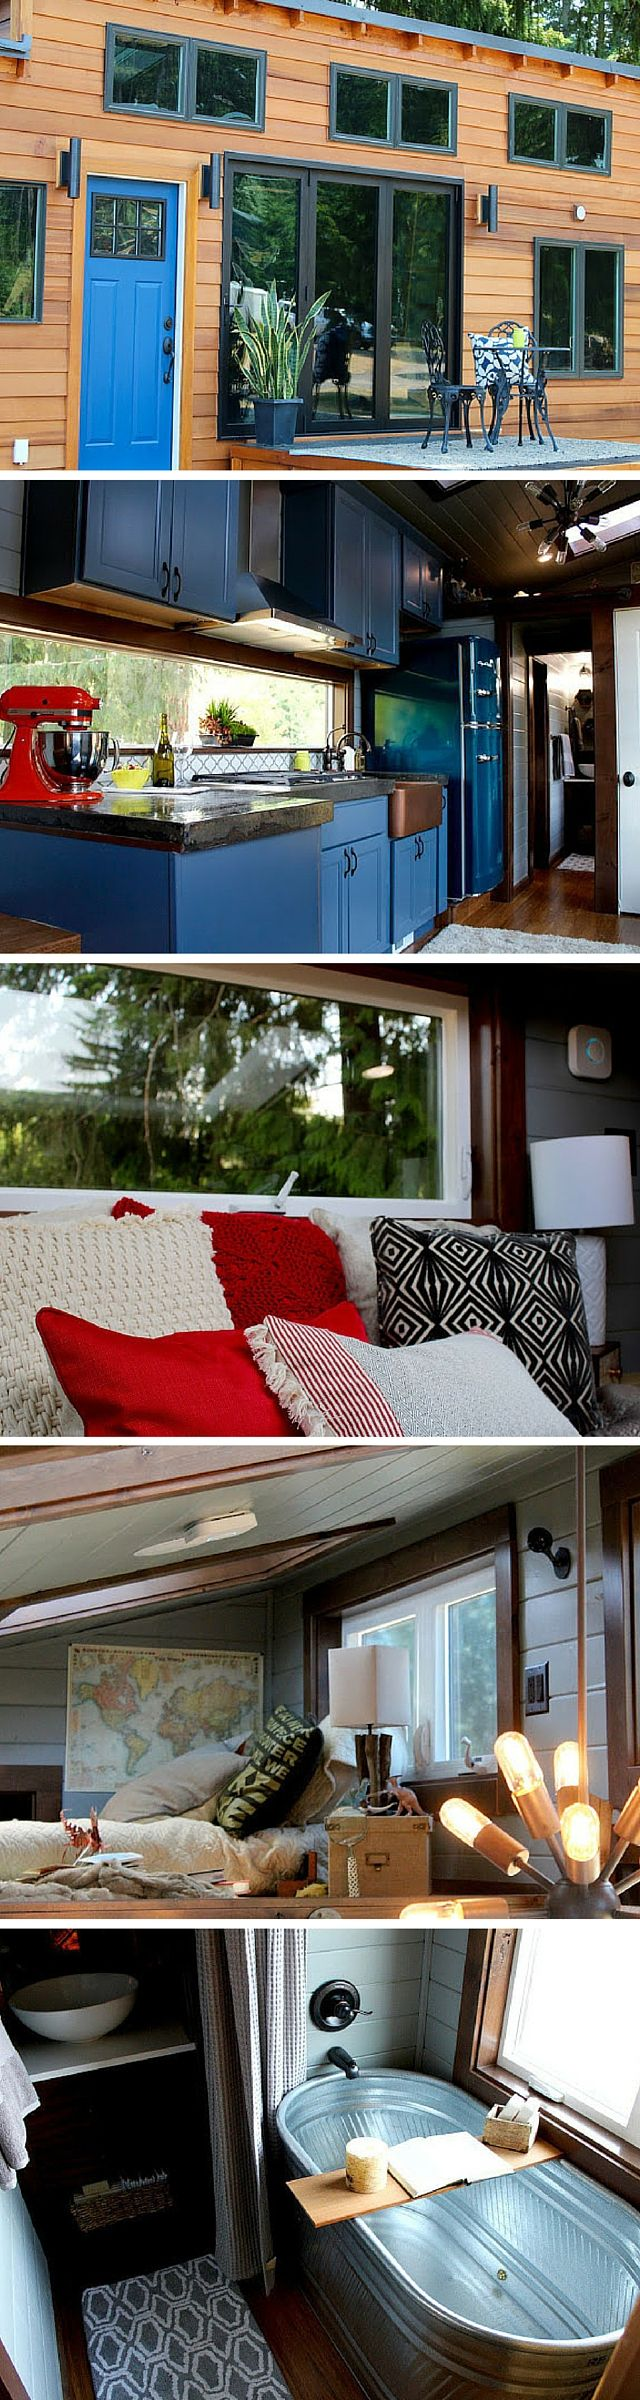 Bedroom tiny home plans on wheels furthermore romeo 500 sq ft log - The Luxurious Tiny House From Tiny Heirloom Of Portland Oregon